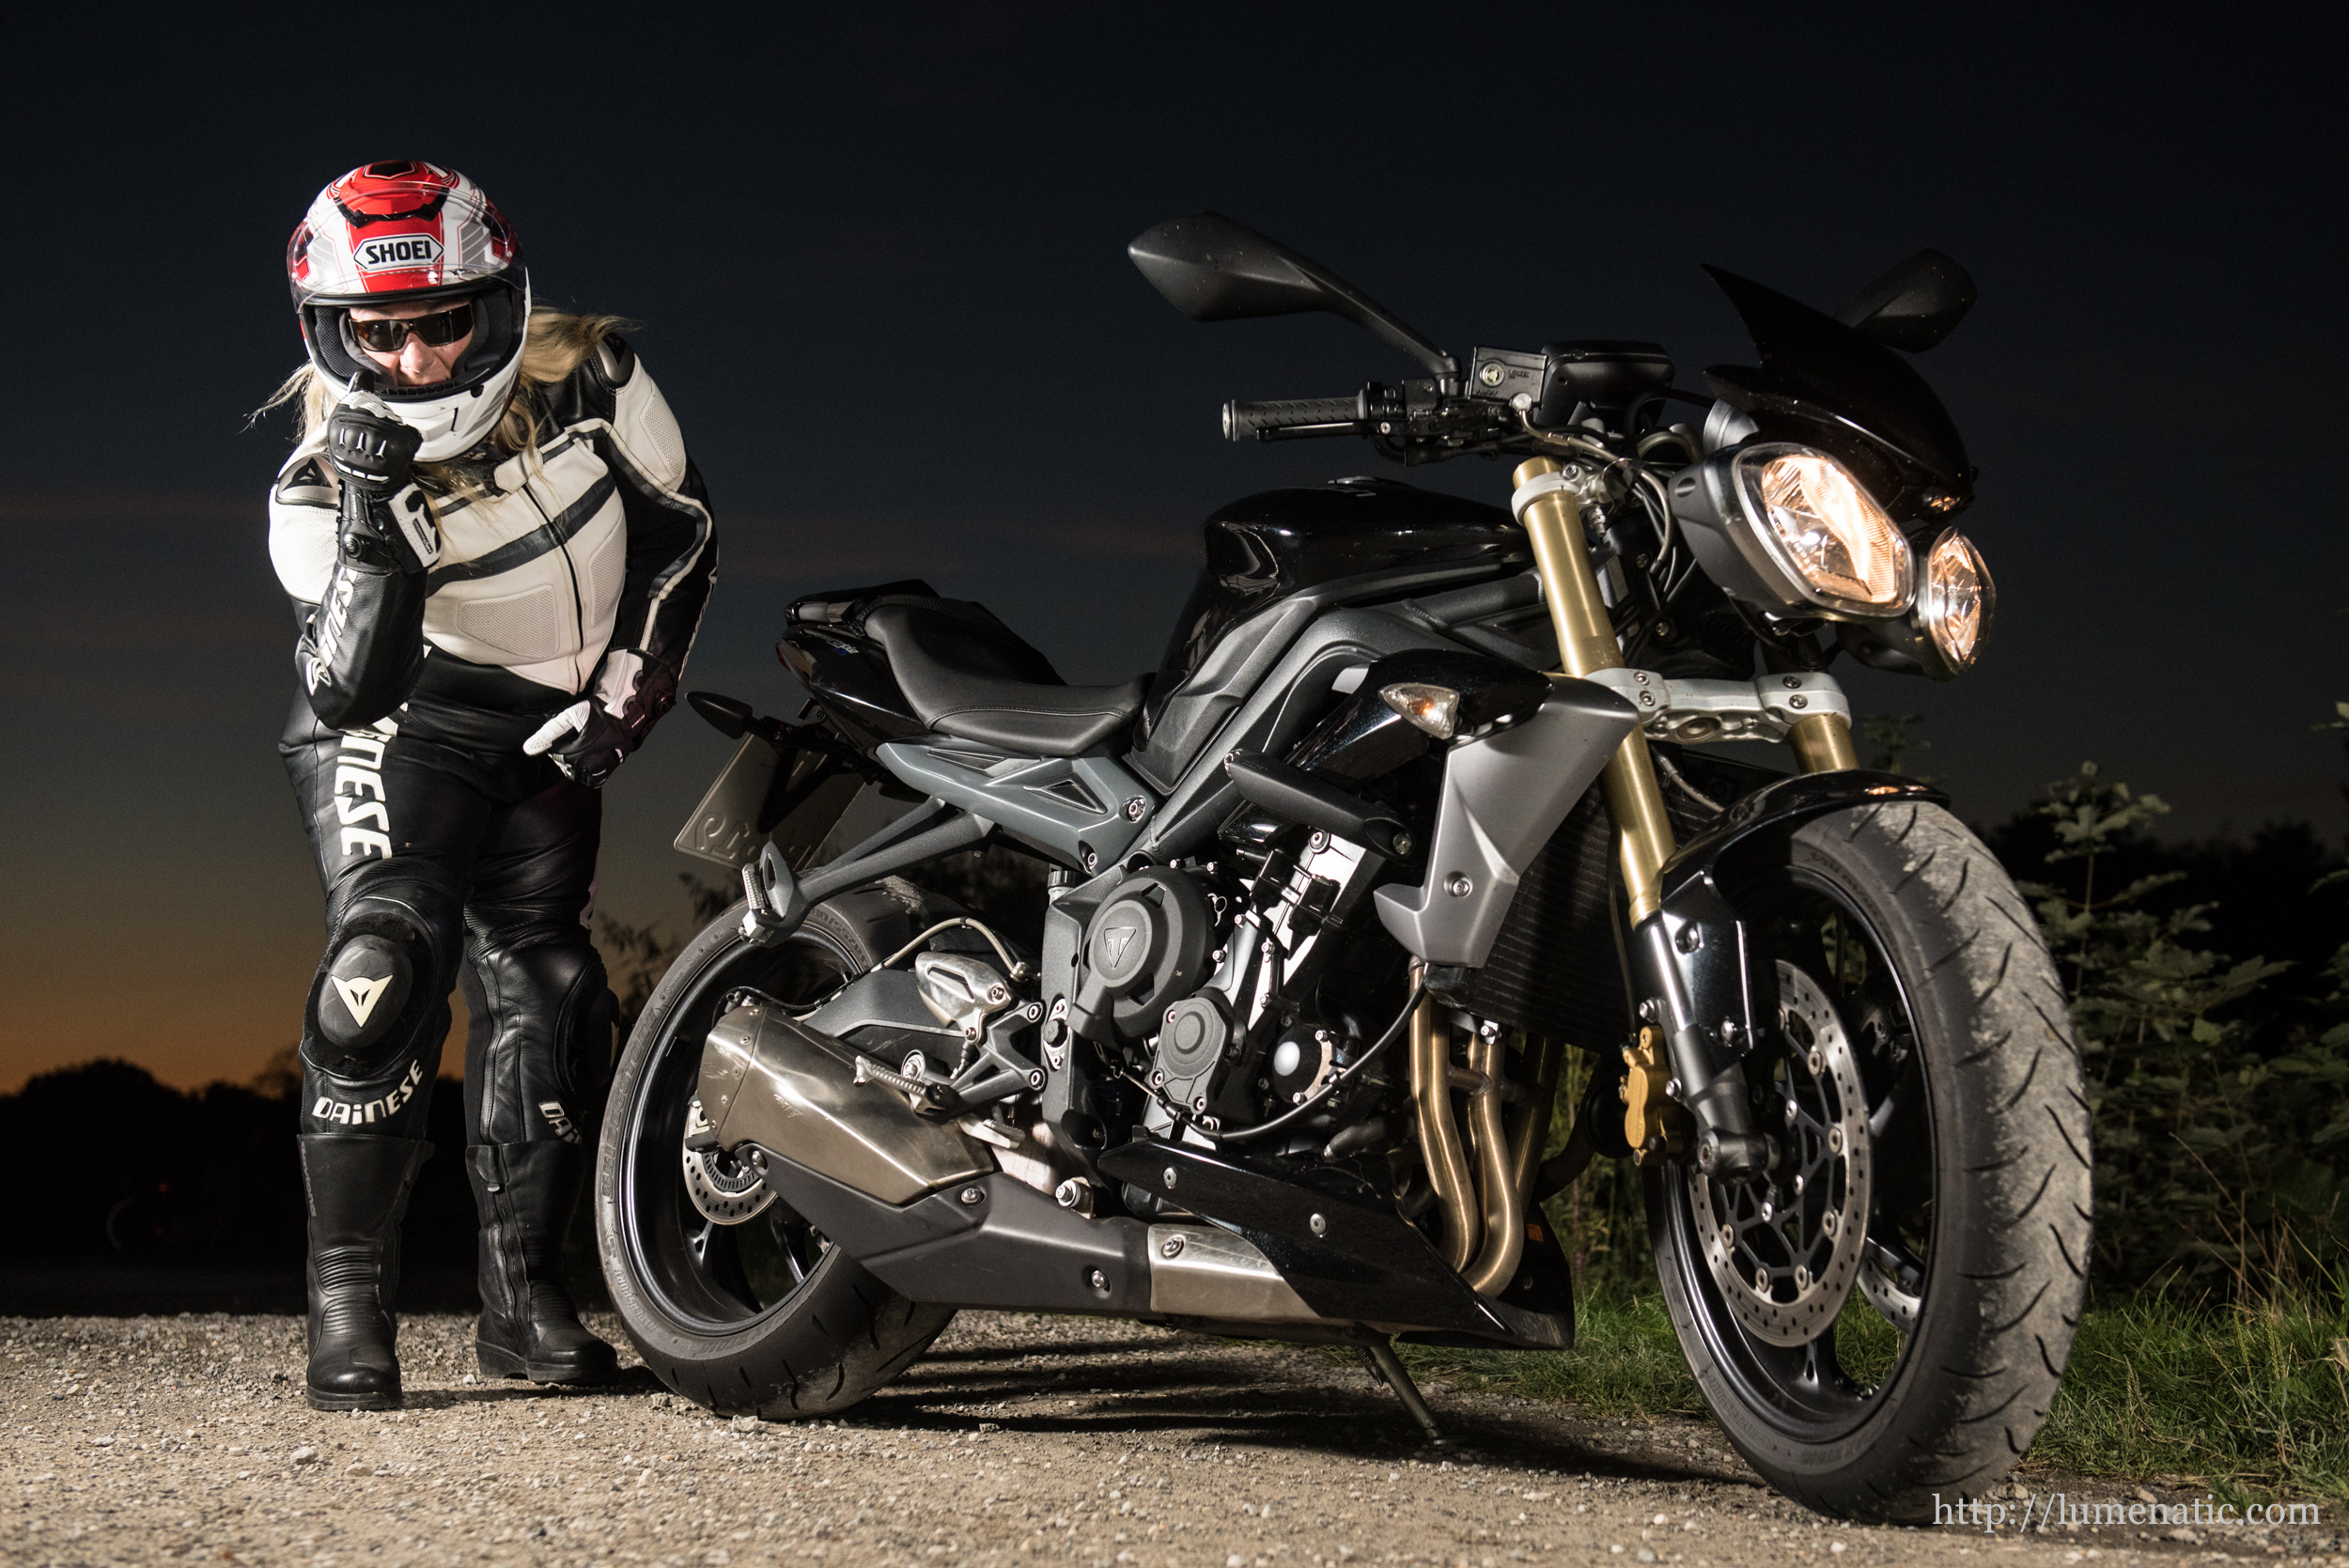 Ladypower and the Triumph Street Triple